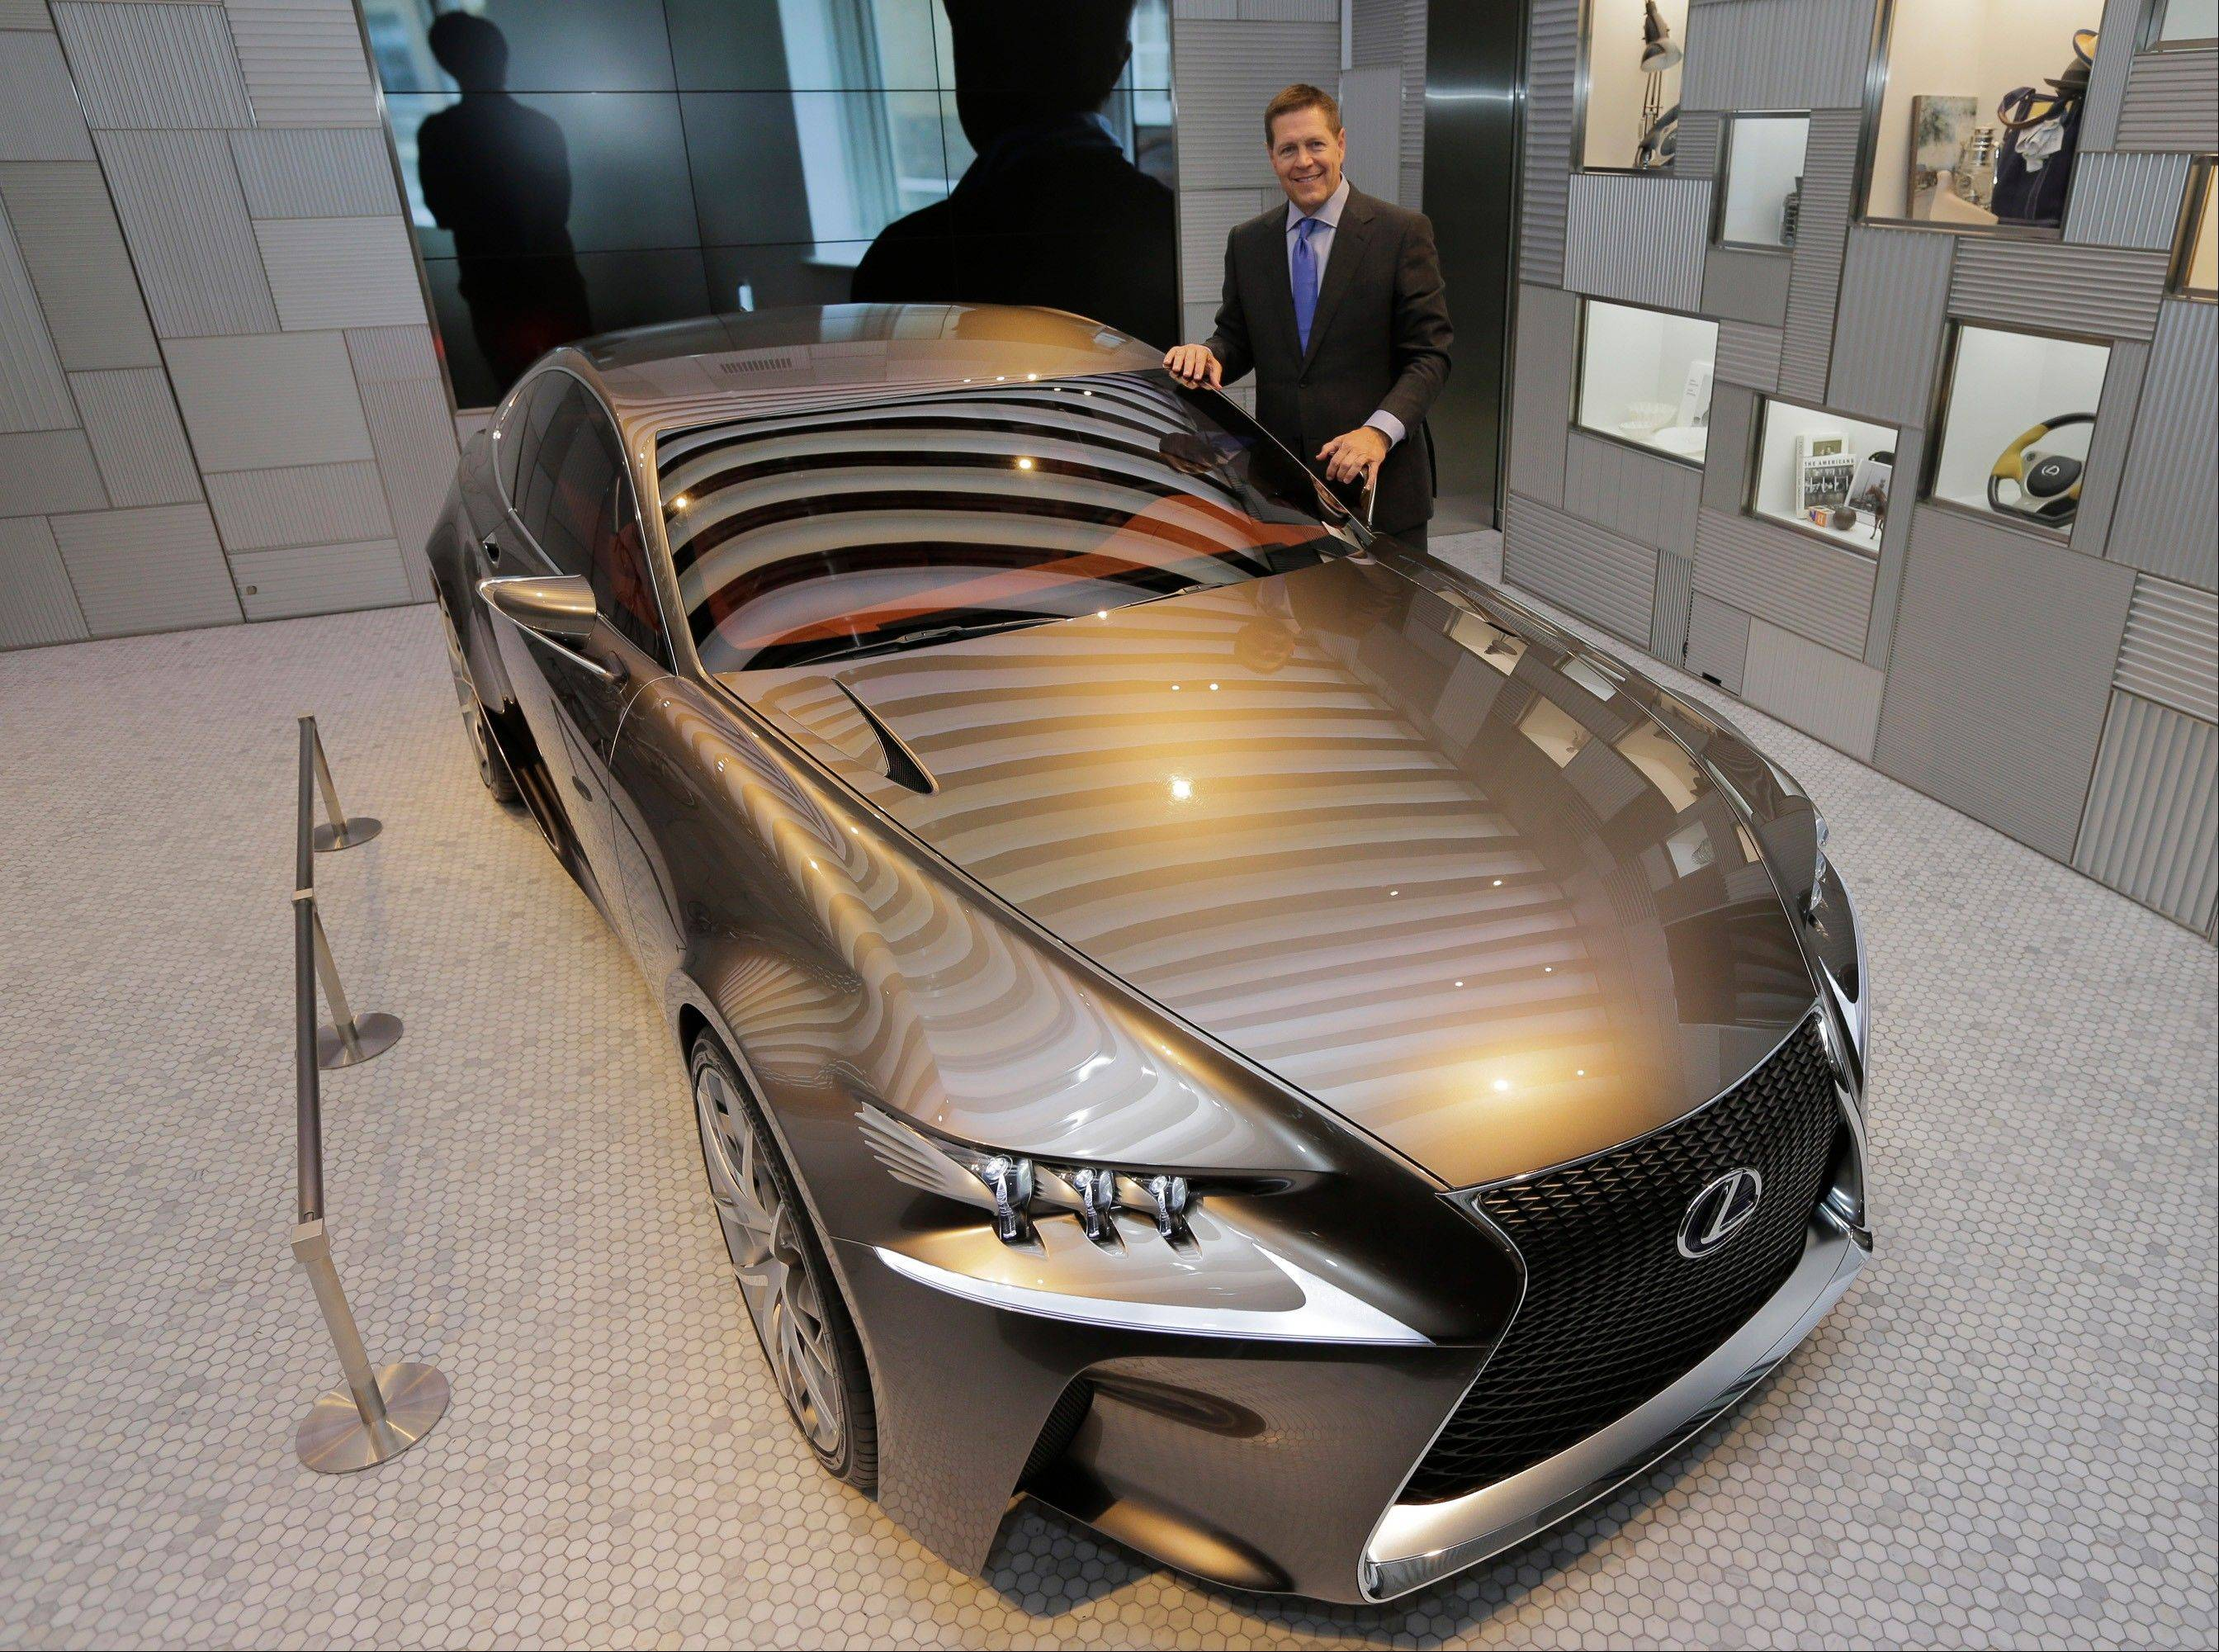 Lexus International Executive Vice President Mark Templin poses Friday with a Lexus LF-CC concept car at a Lexus showroom in Tokyo. Toyota's luxury brand Lexus is trying to shake off its stodgy image. So it's opening a cafe. The special lounges, the first of which is opening next week in Tokyo's fashionable Aoyama district, are designed to look more like a chic home than a standard showroom. In fact, only one vehicle can be displayed at a time.